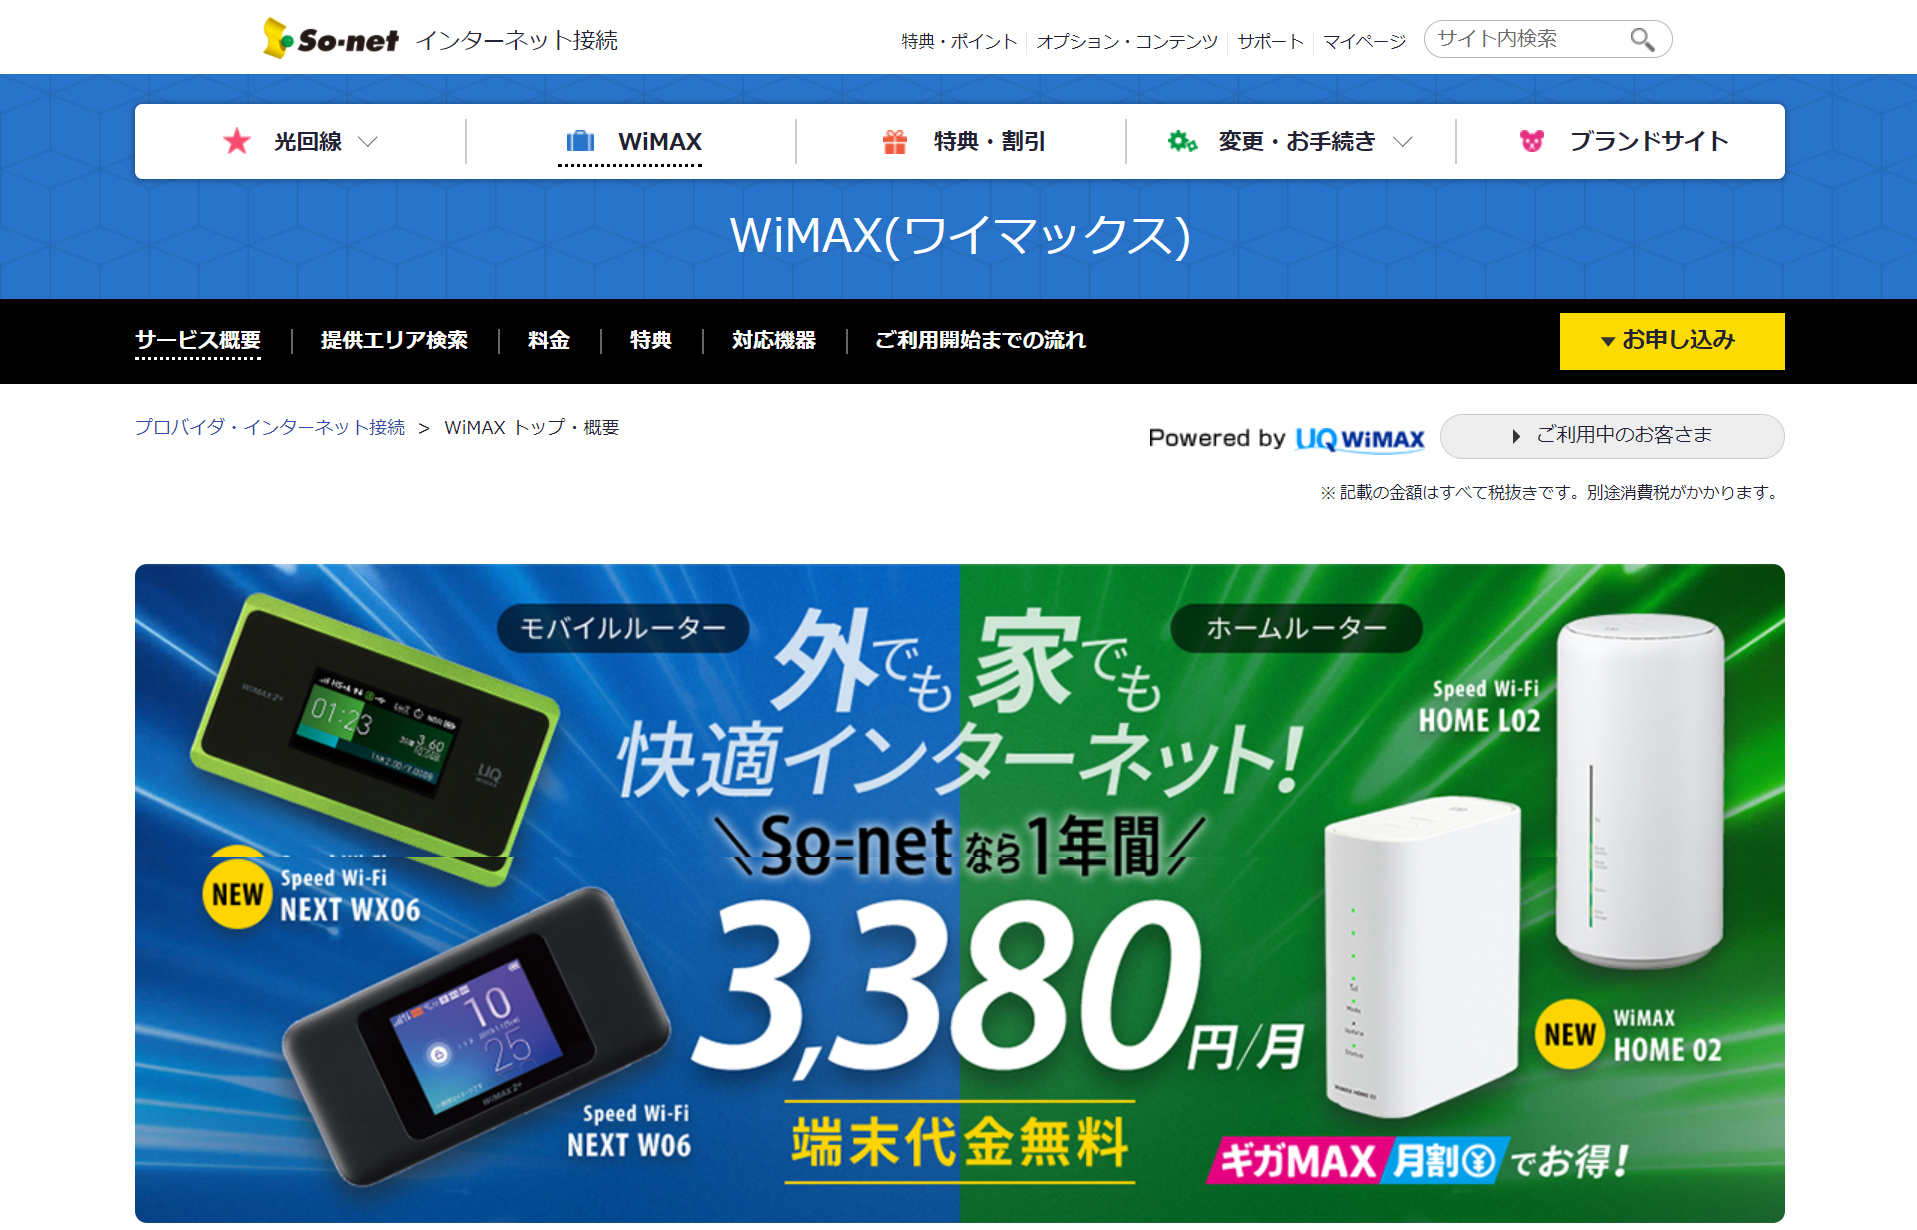 WiMAX_比較_so-net